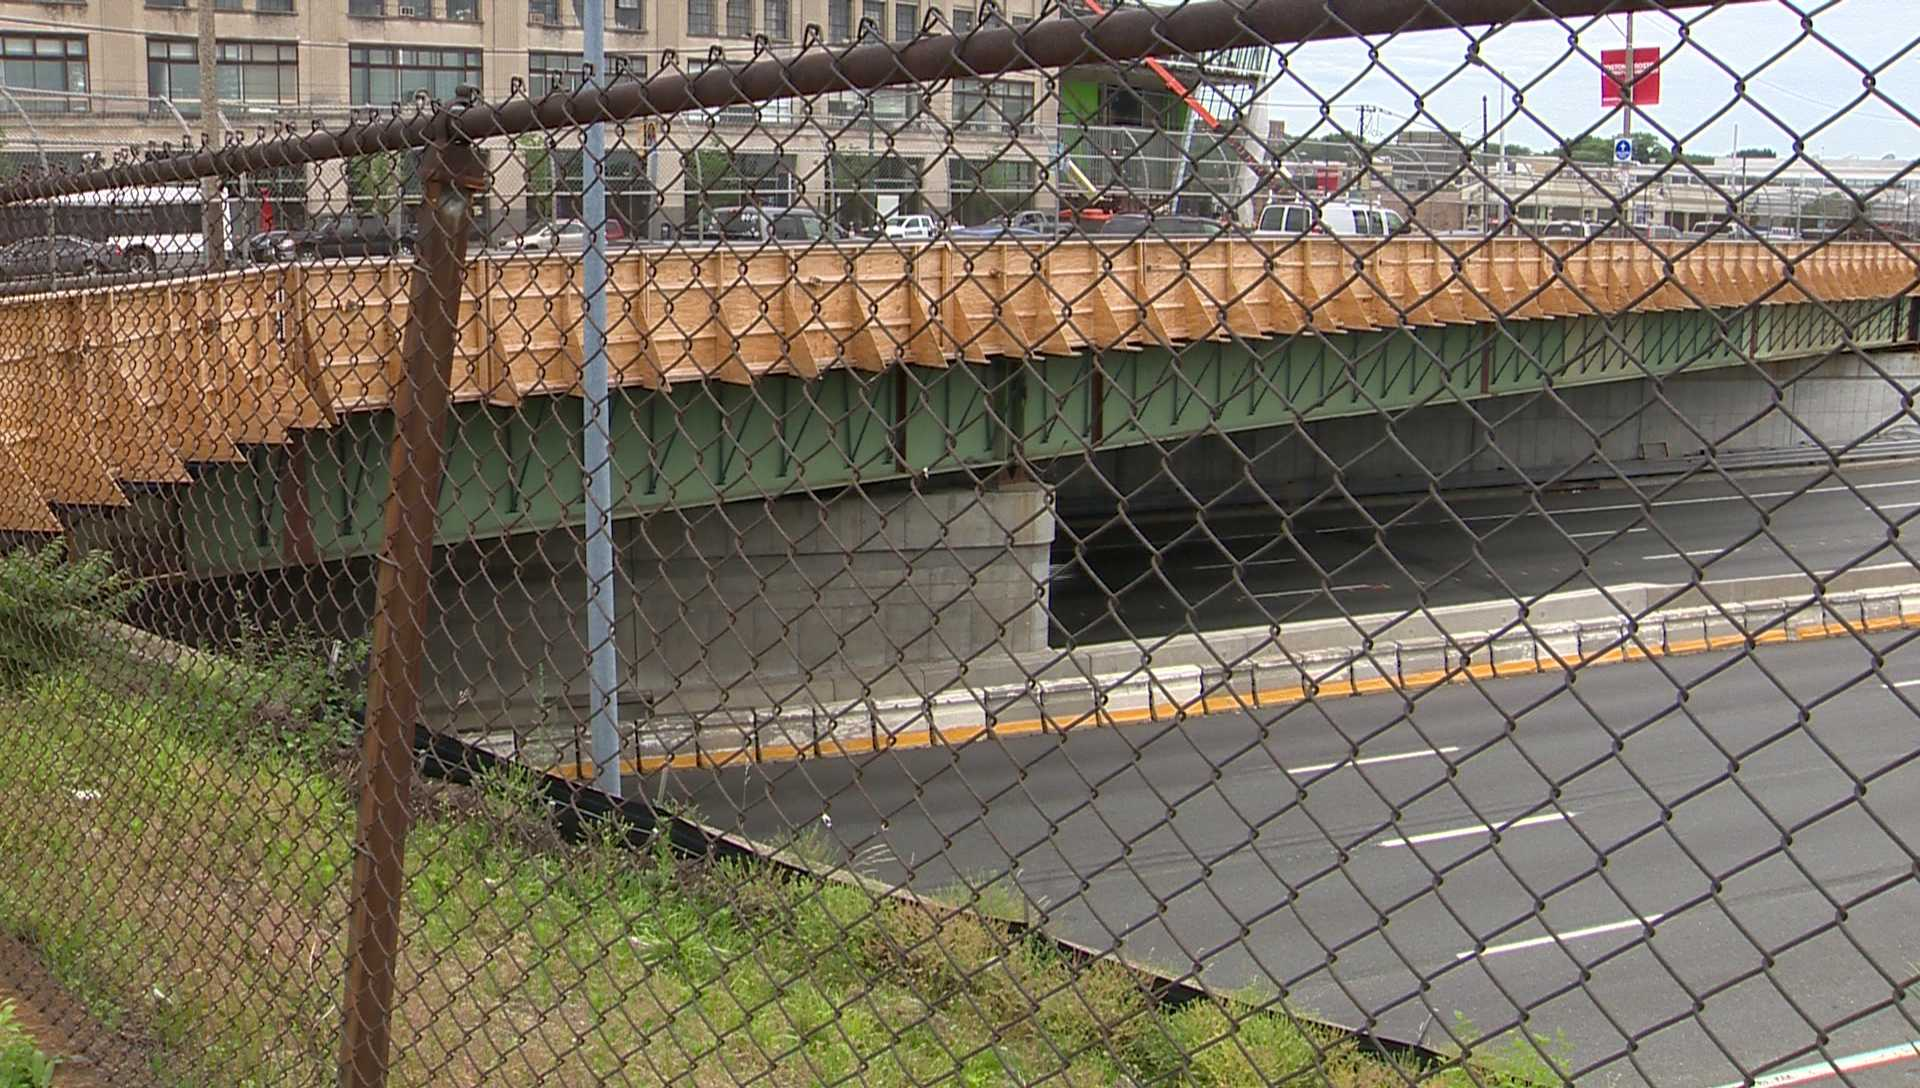 Mass. Pike Lanes Reopen Early In Boston Amid Bridge Work